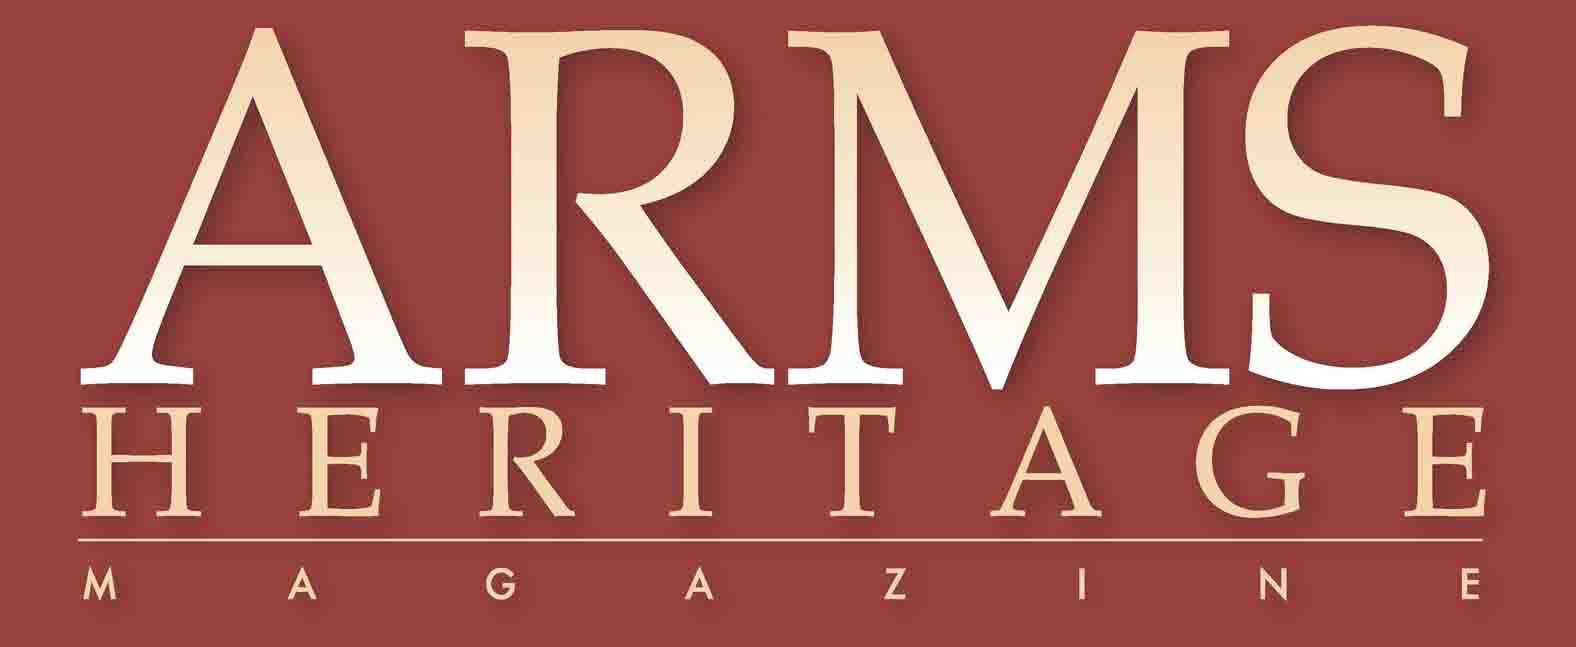 ARMS HERITAGE MAGAZINE - Volume 2, All Six Issues